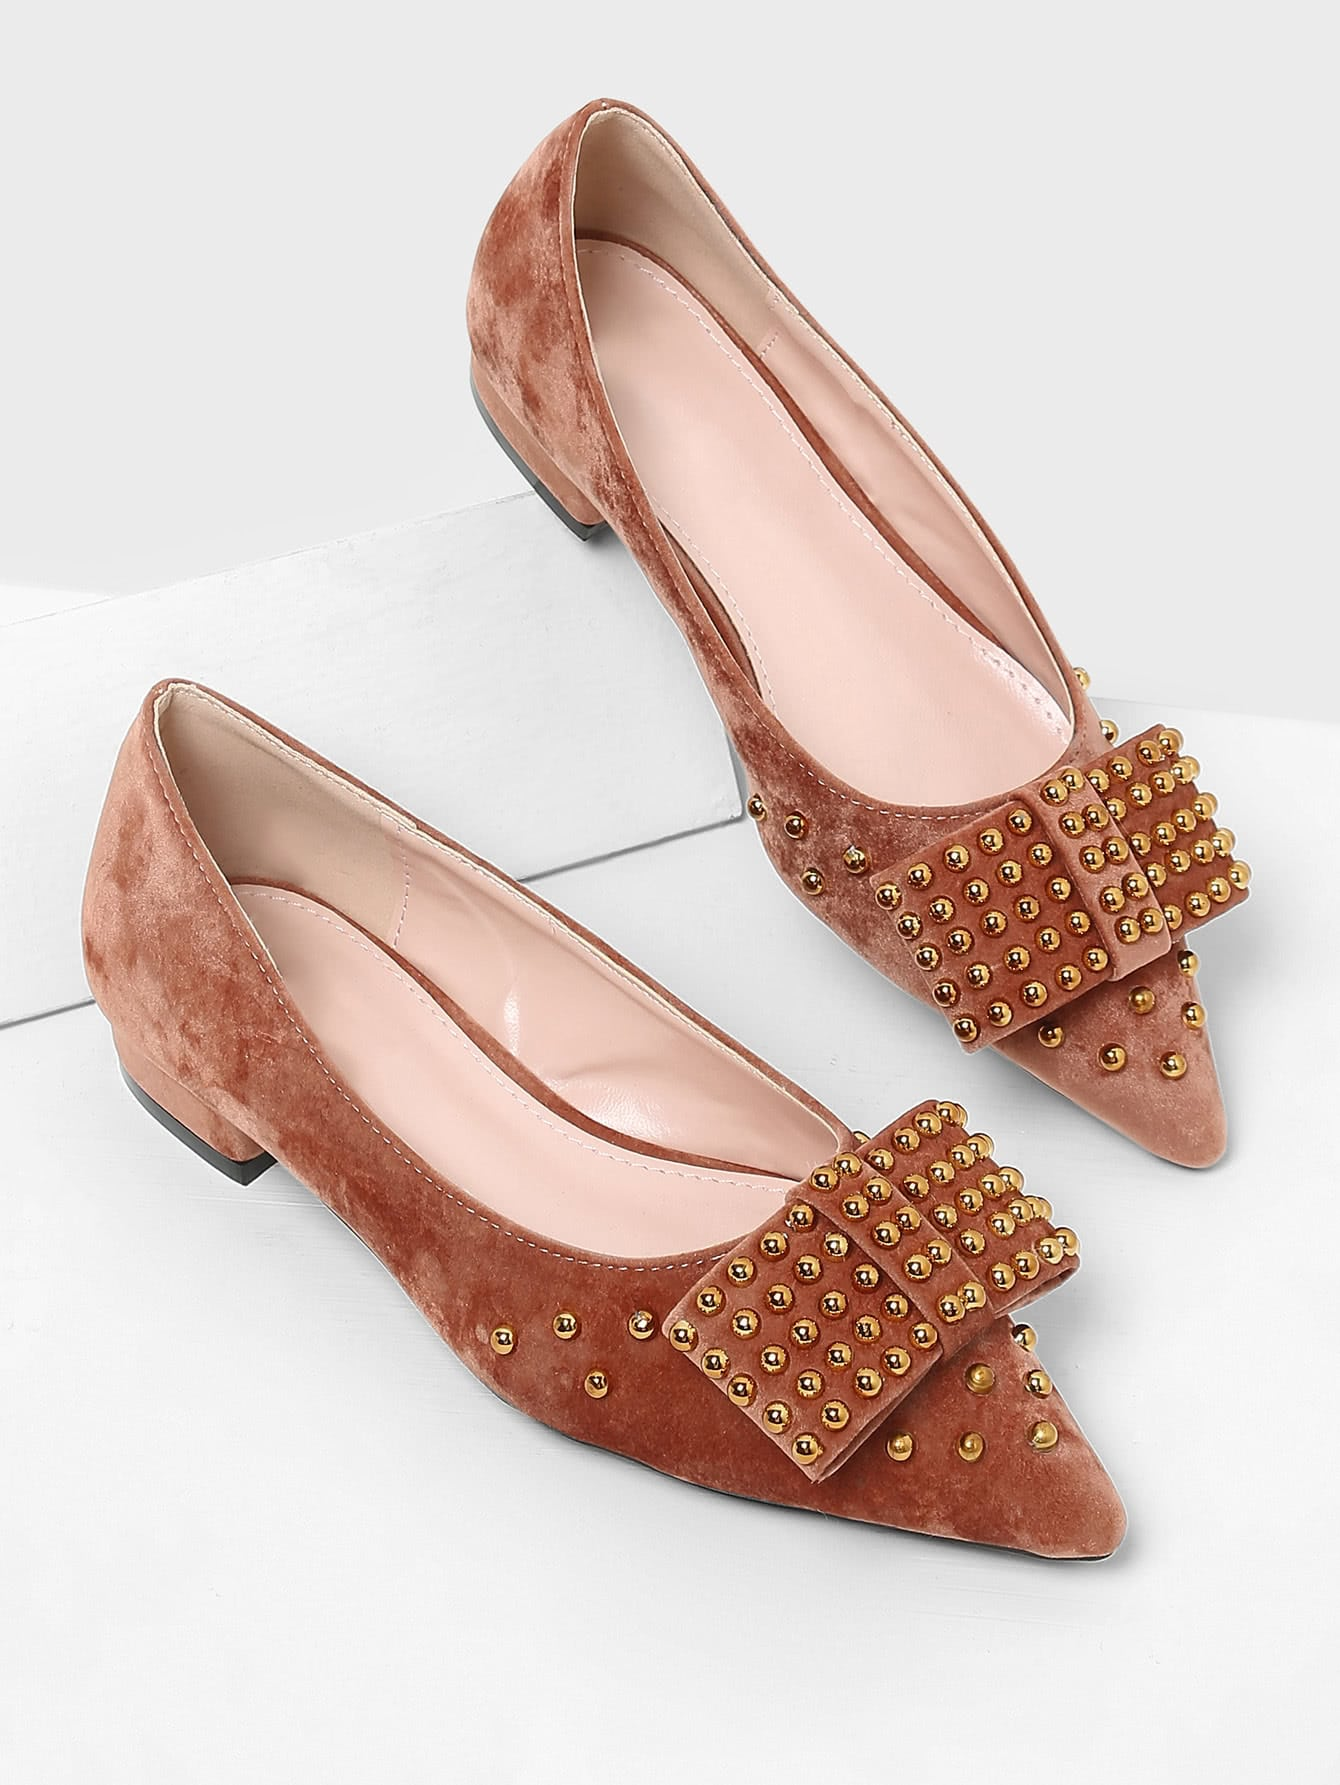 Studded Design Pointed Toe Flats майки спортивные diamond майка спортивная